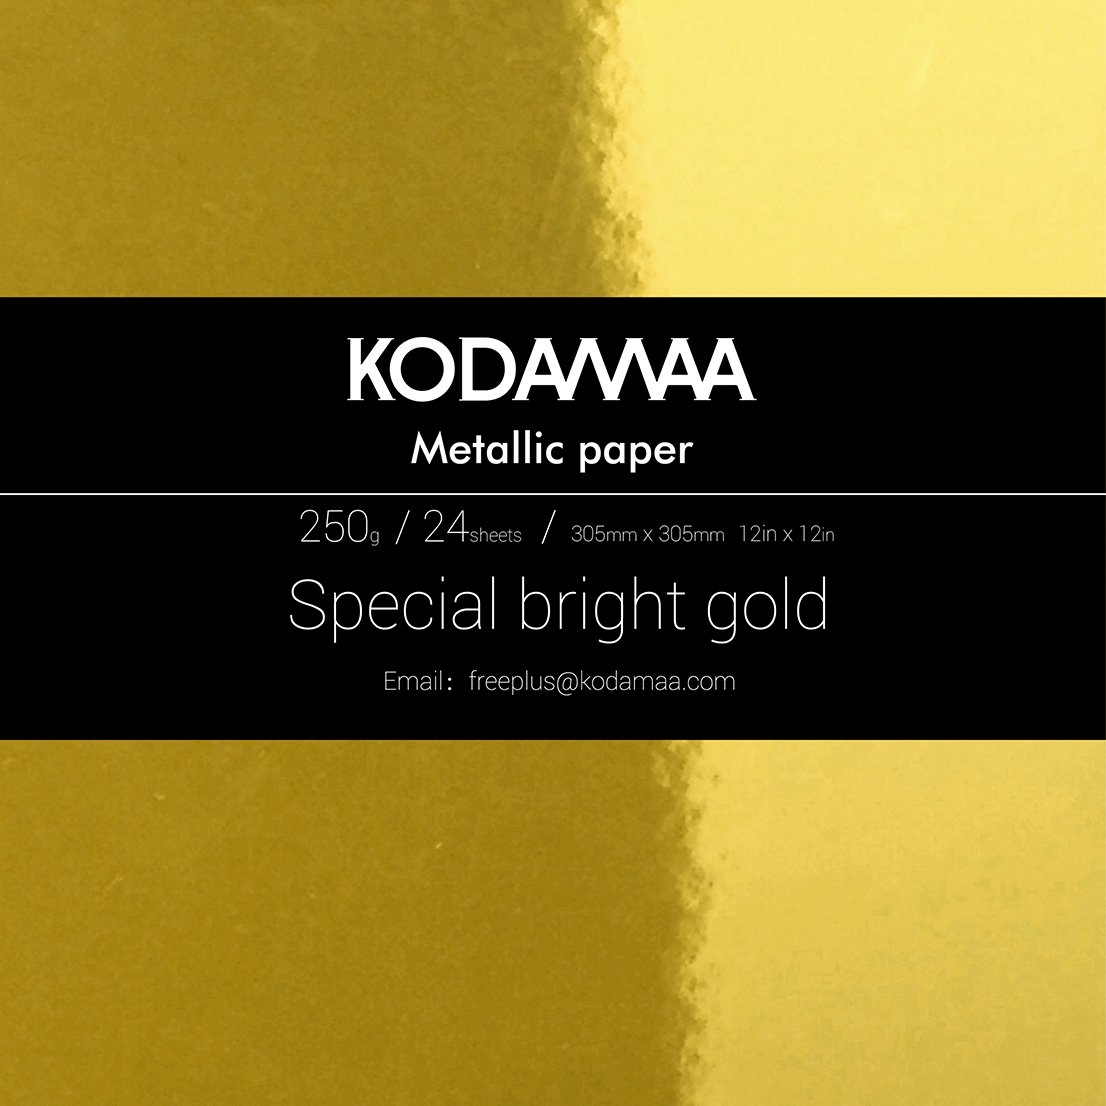 KODAMAA 12'x12' Square Art Craft Gold/Silver Cardstock, Multipurpose Shimmer Metallic Paper Perfect for Festival Crafting, Party Dé cor, Gift Packaging (24 Sheets) 4336981949